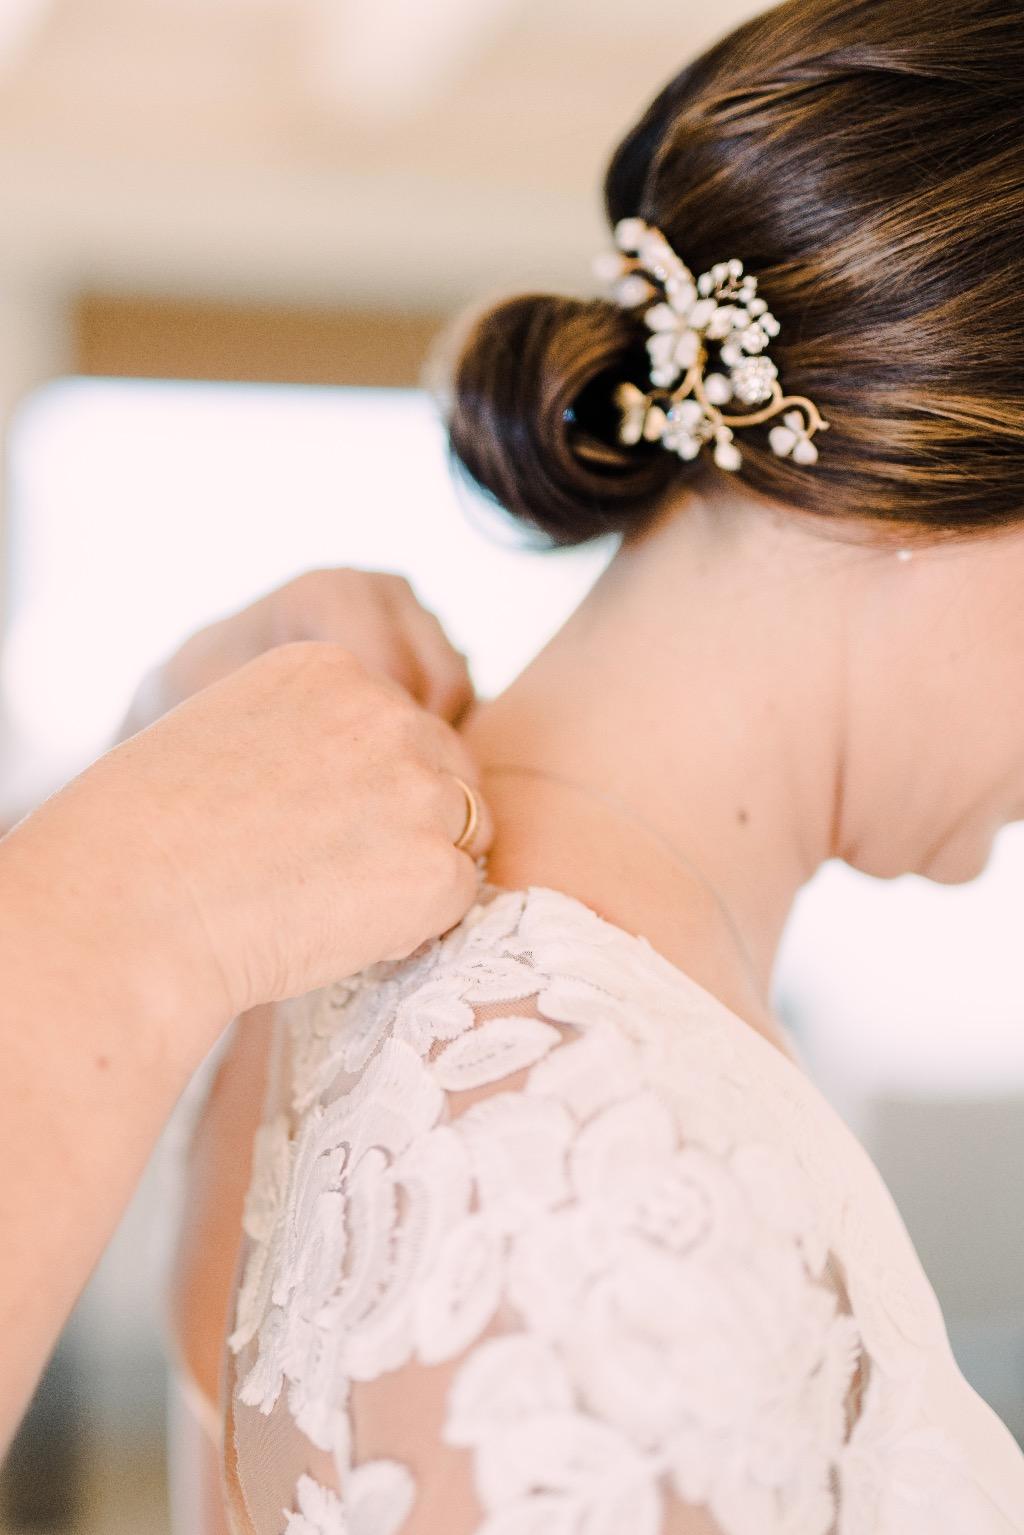 MD_MendocinoWedding_ScottAndrewStudio_3_GettingReady-31.jpg